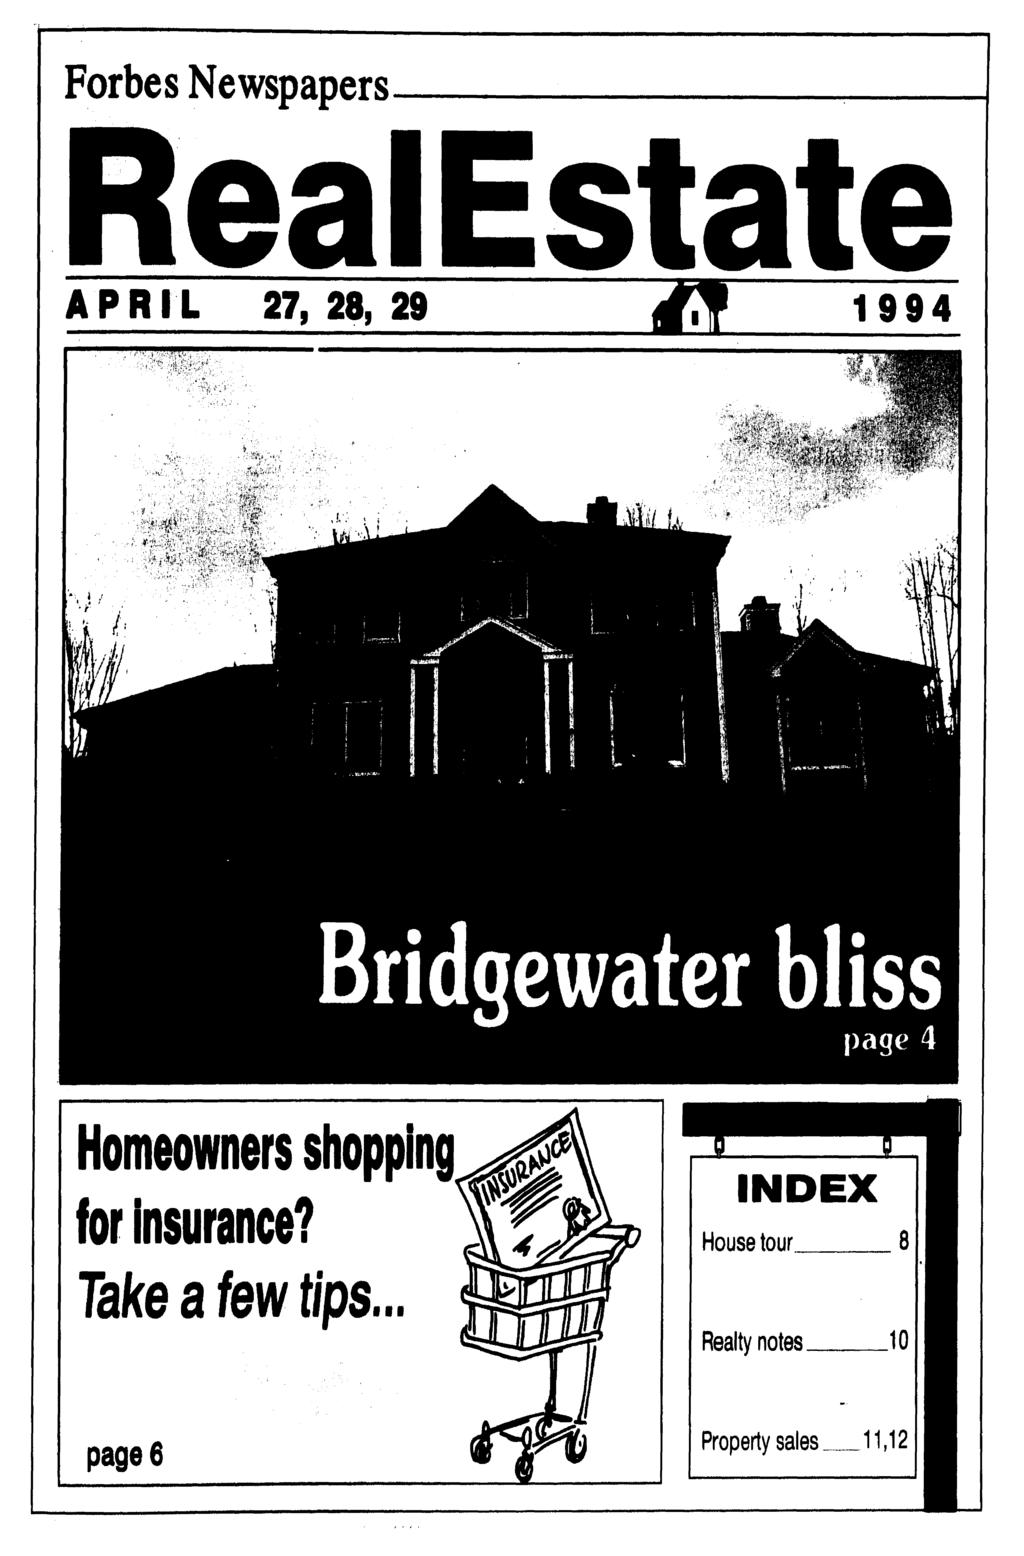 Forbes Newspapers APRIL 27, 28, 29 1994 Homeowners shopping for